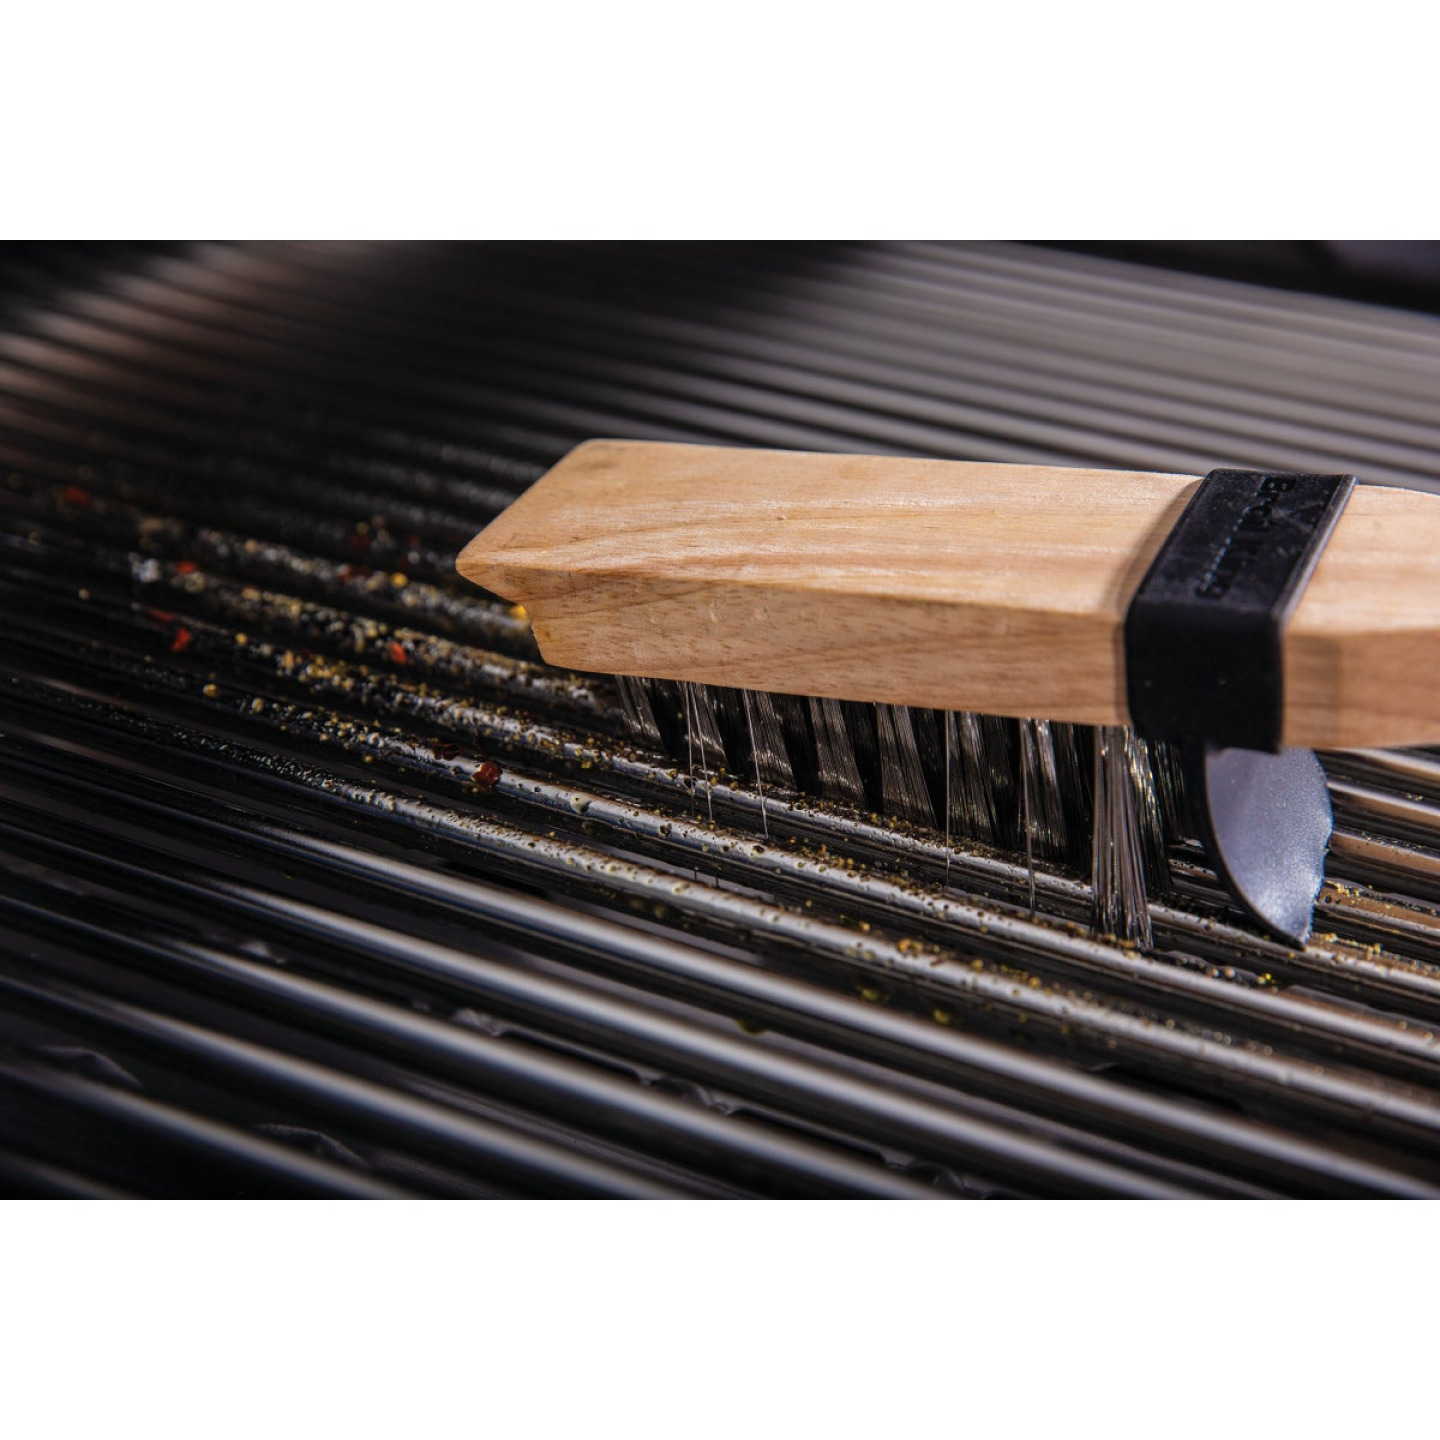 Broil King 21 In. Stainless Steel Bristles Heavy-Duty Grill Cleaning Brush Image 2